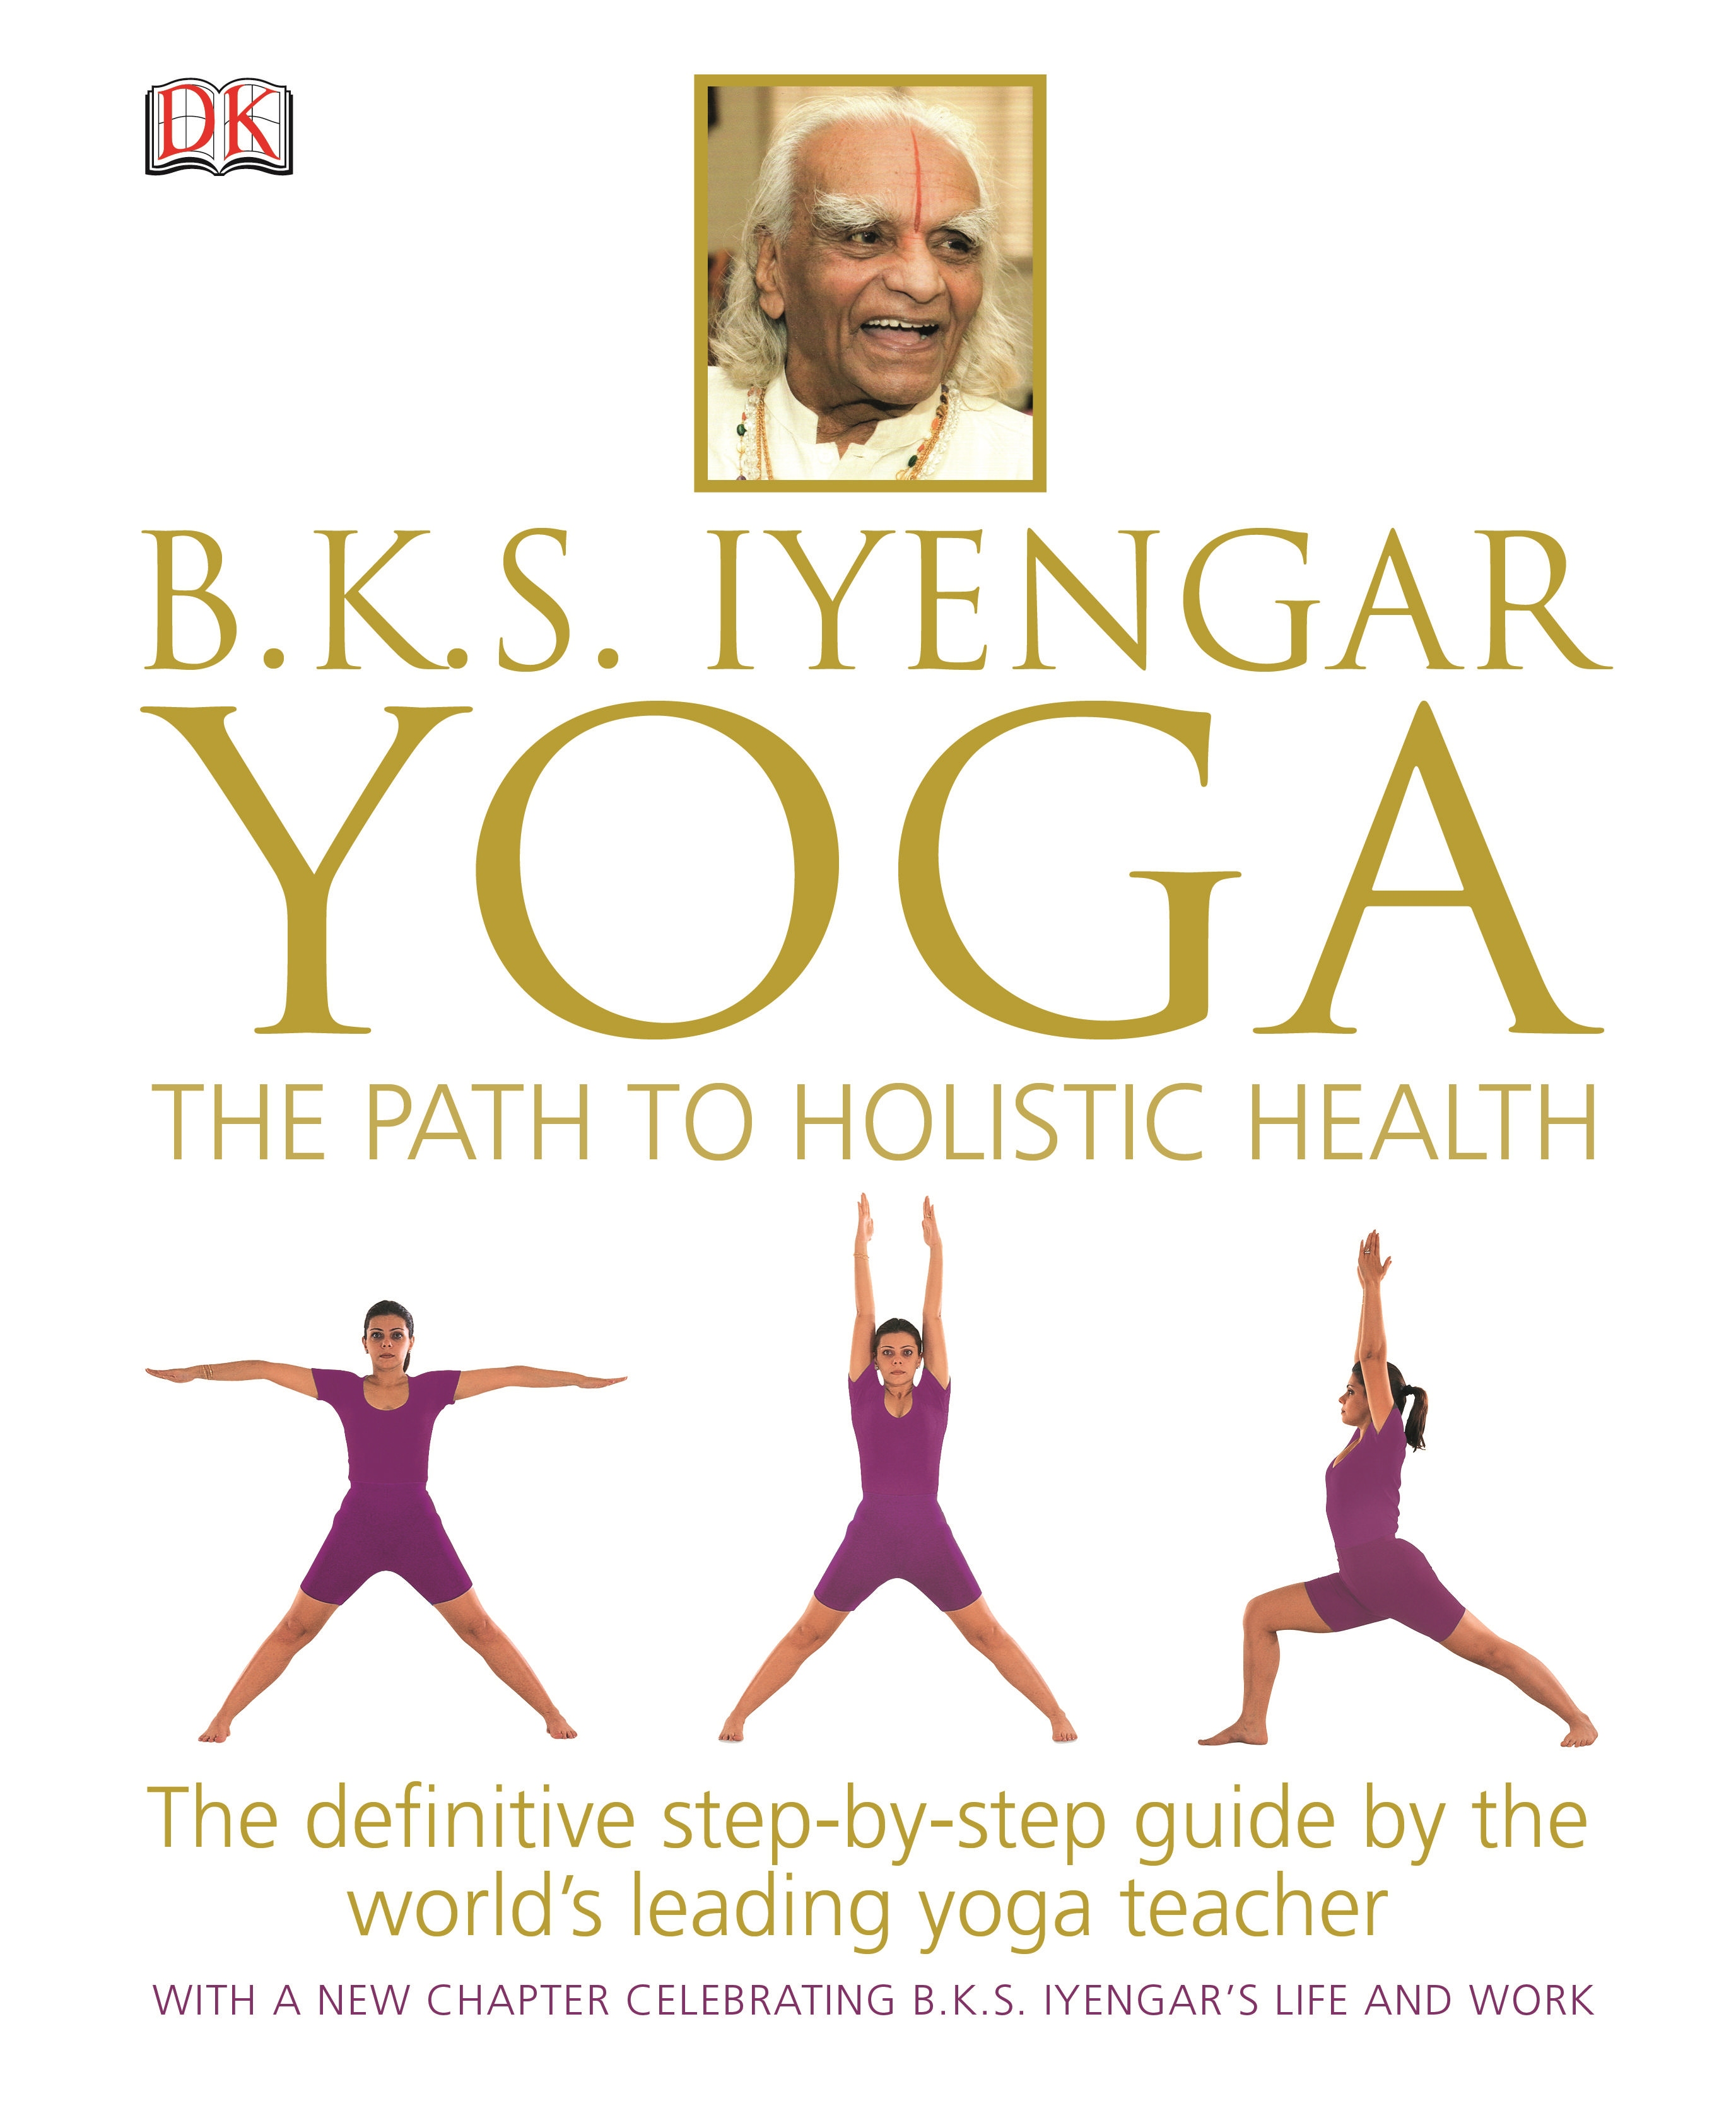 Bks Iyengar Yoga Path To Holistic Health by DK, ISBN: 9781409343479